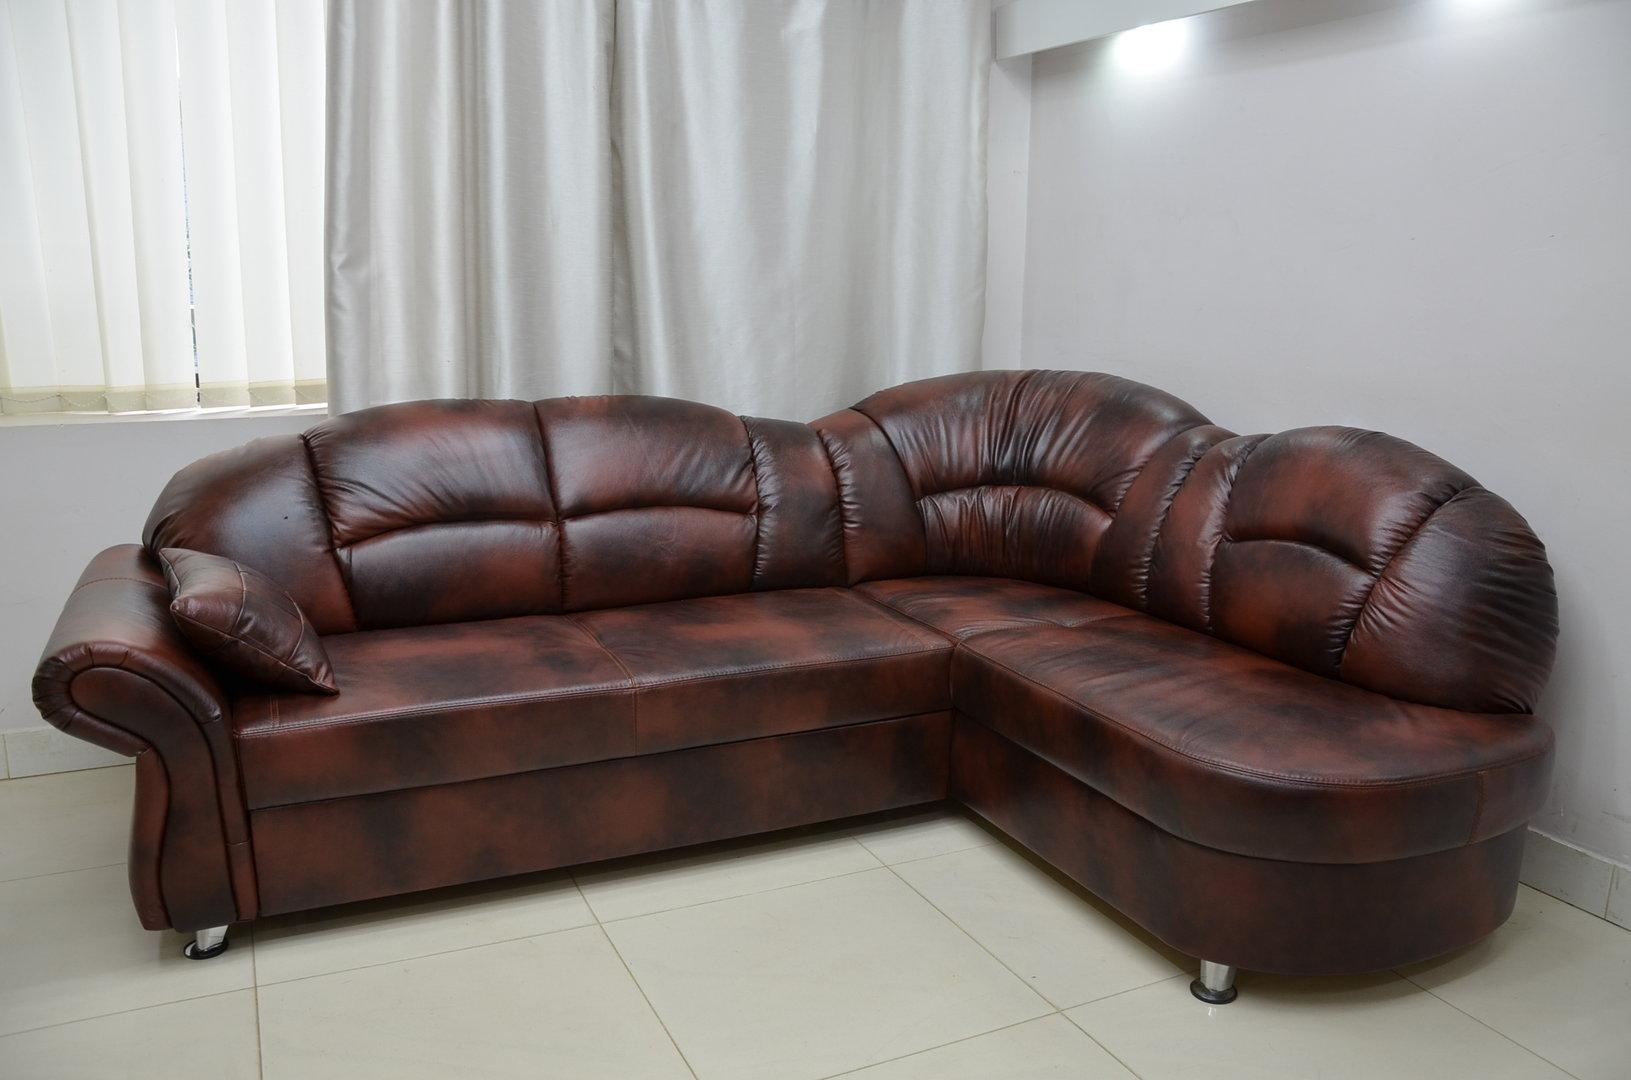 Real Leather Corner Sofa Bed Romero, Real Leather All Over For Corner Sofa Leather (Image 14 of 20)